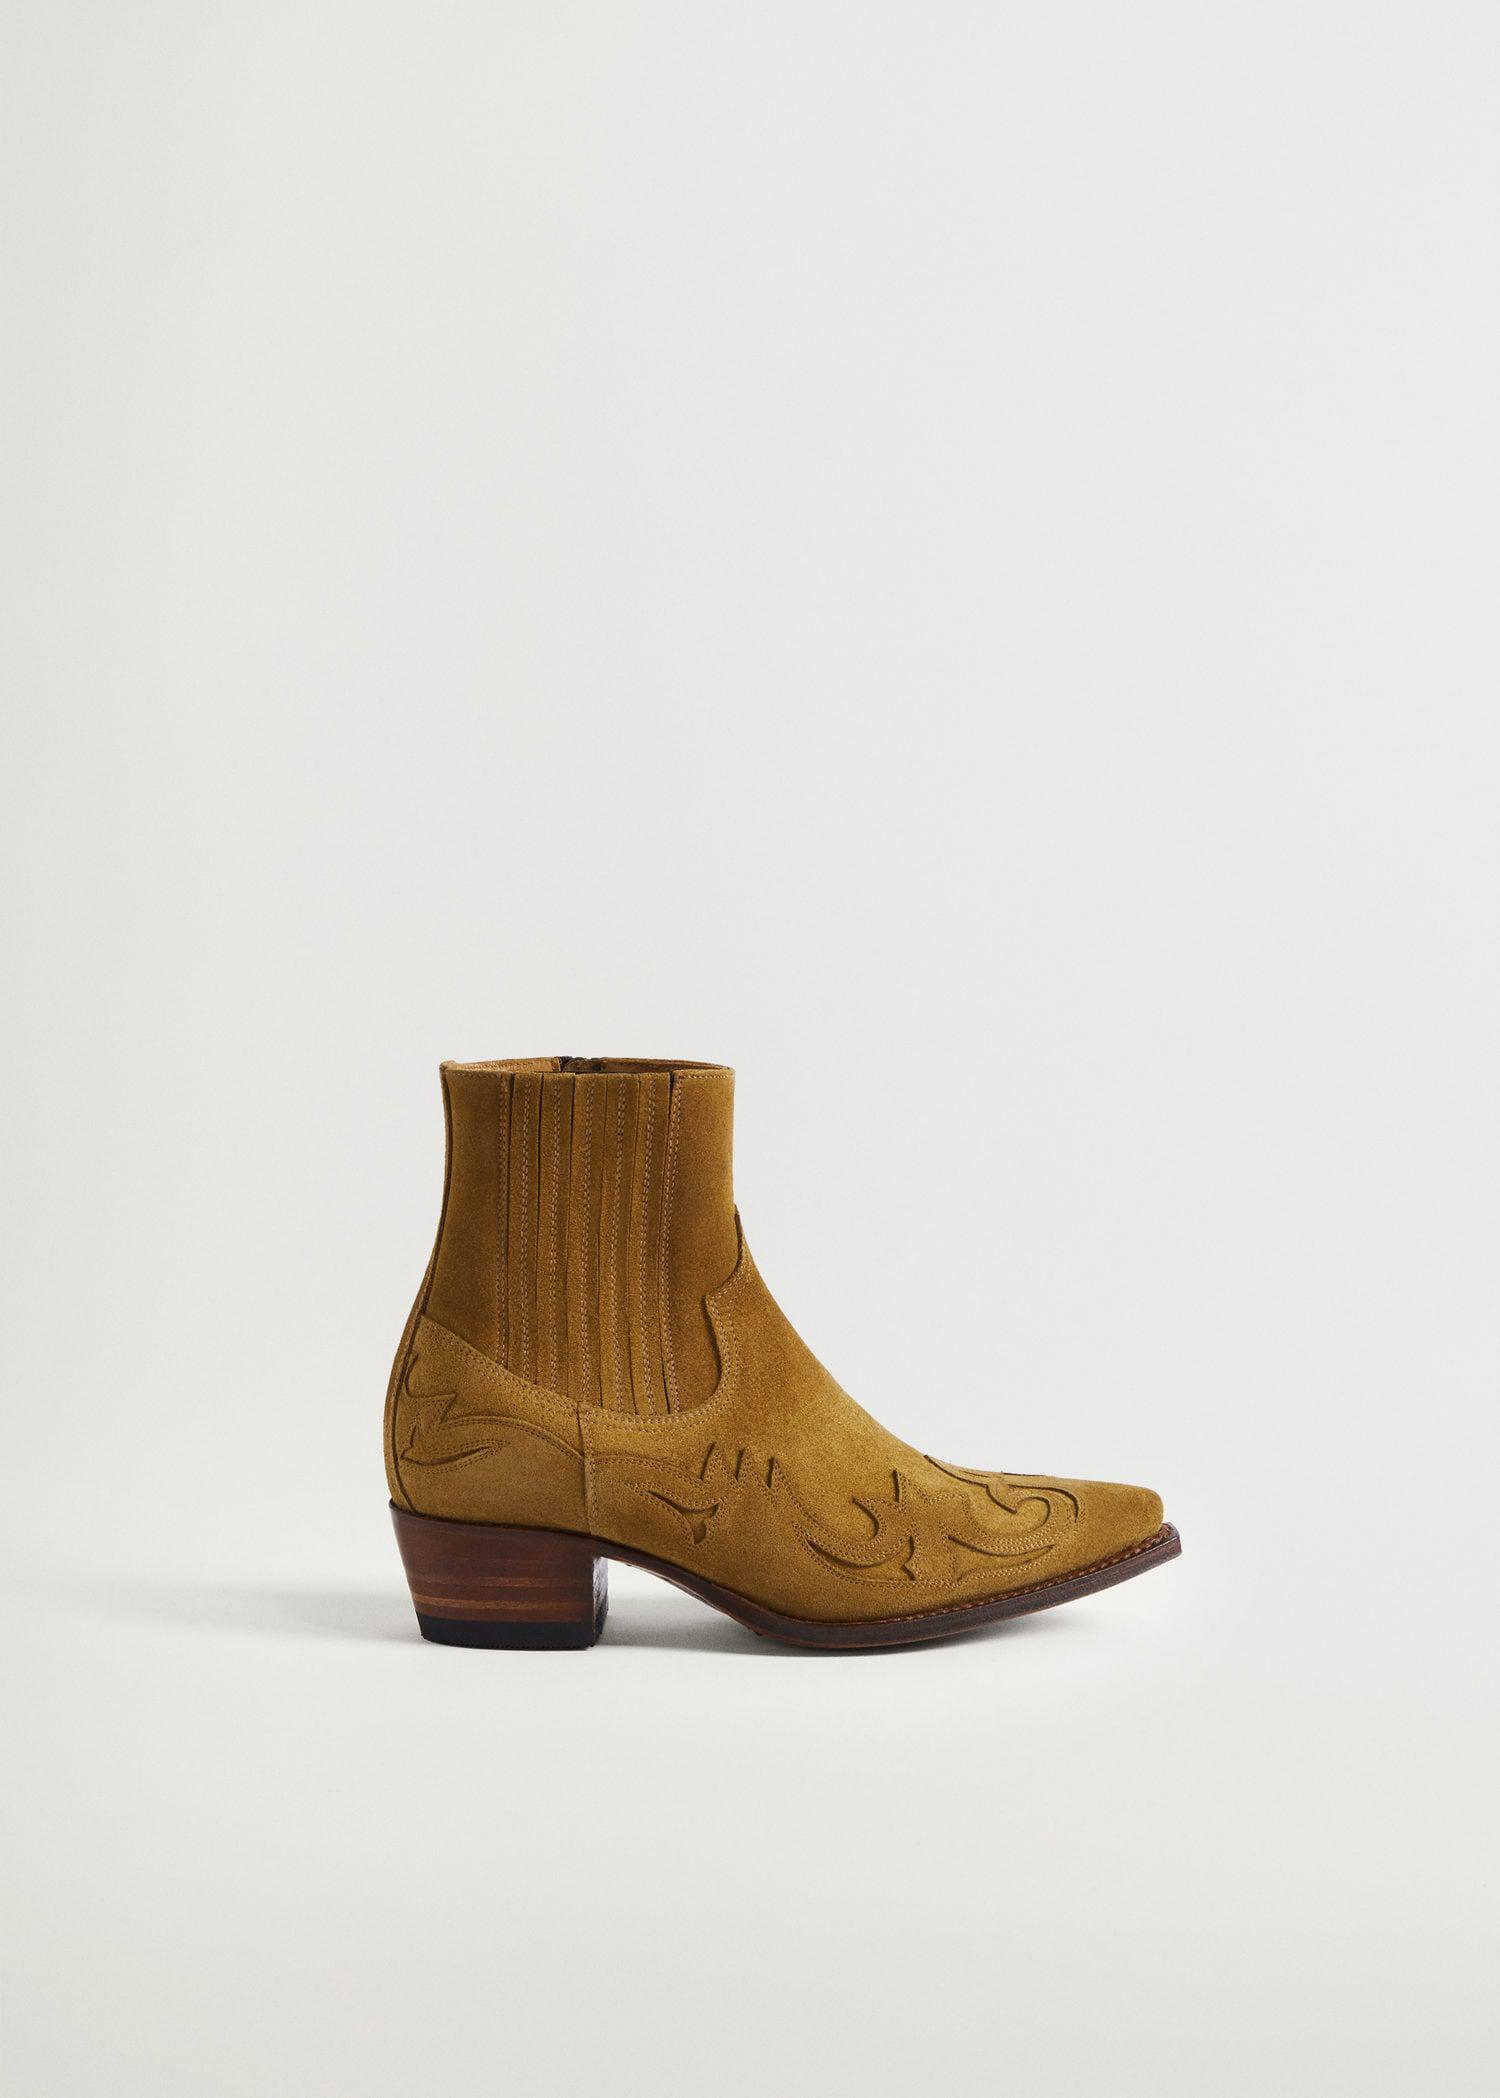 Goodyear welted leather boots